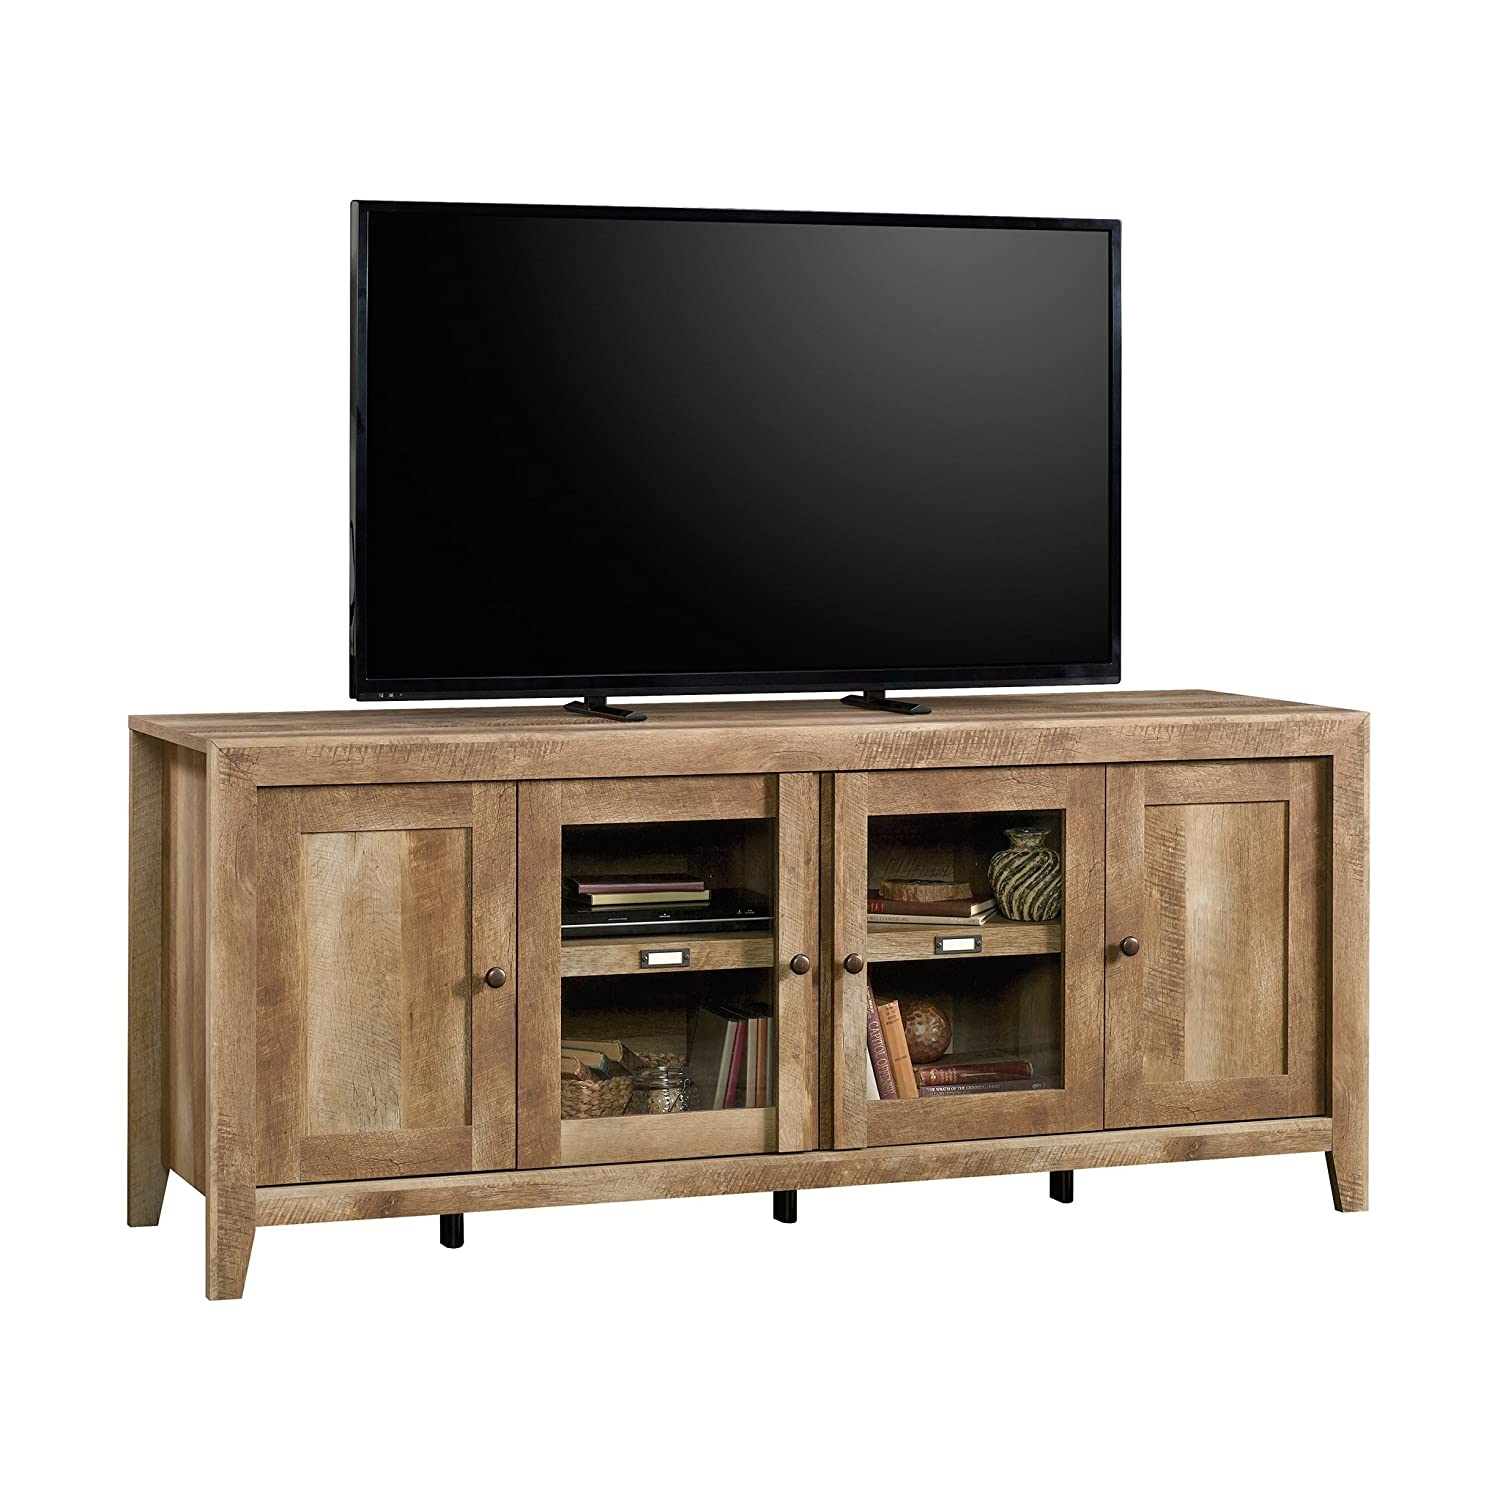 Amazon.com: sauder Dakota Pass Soporte de TV en roble ...